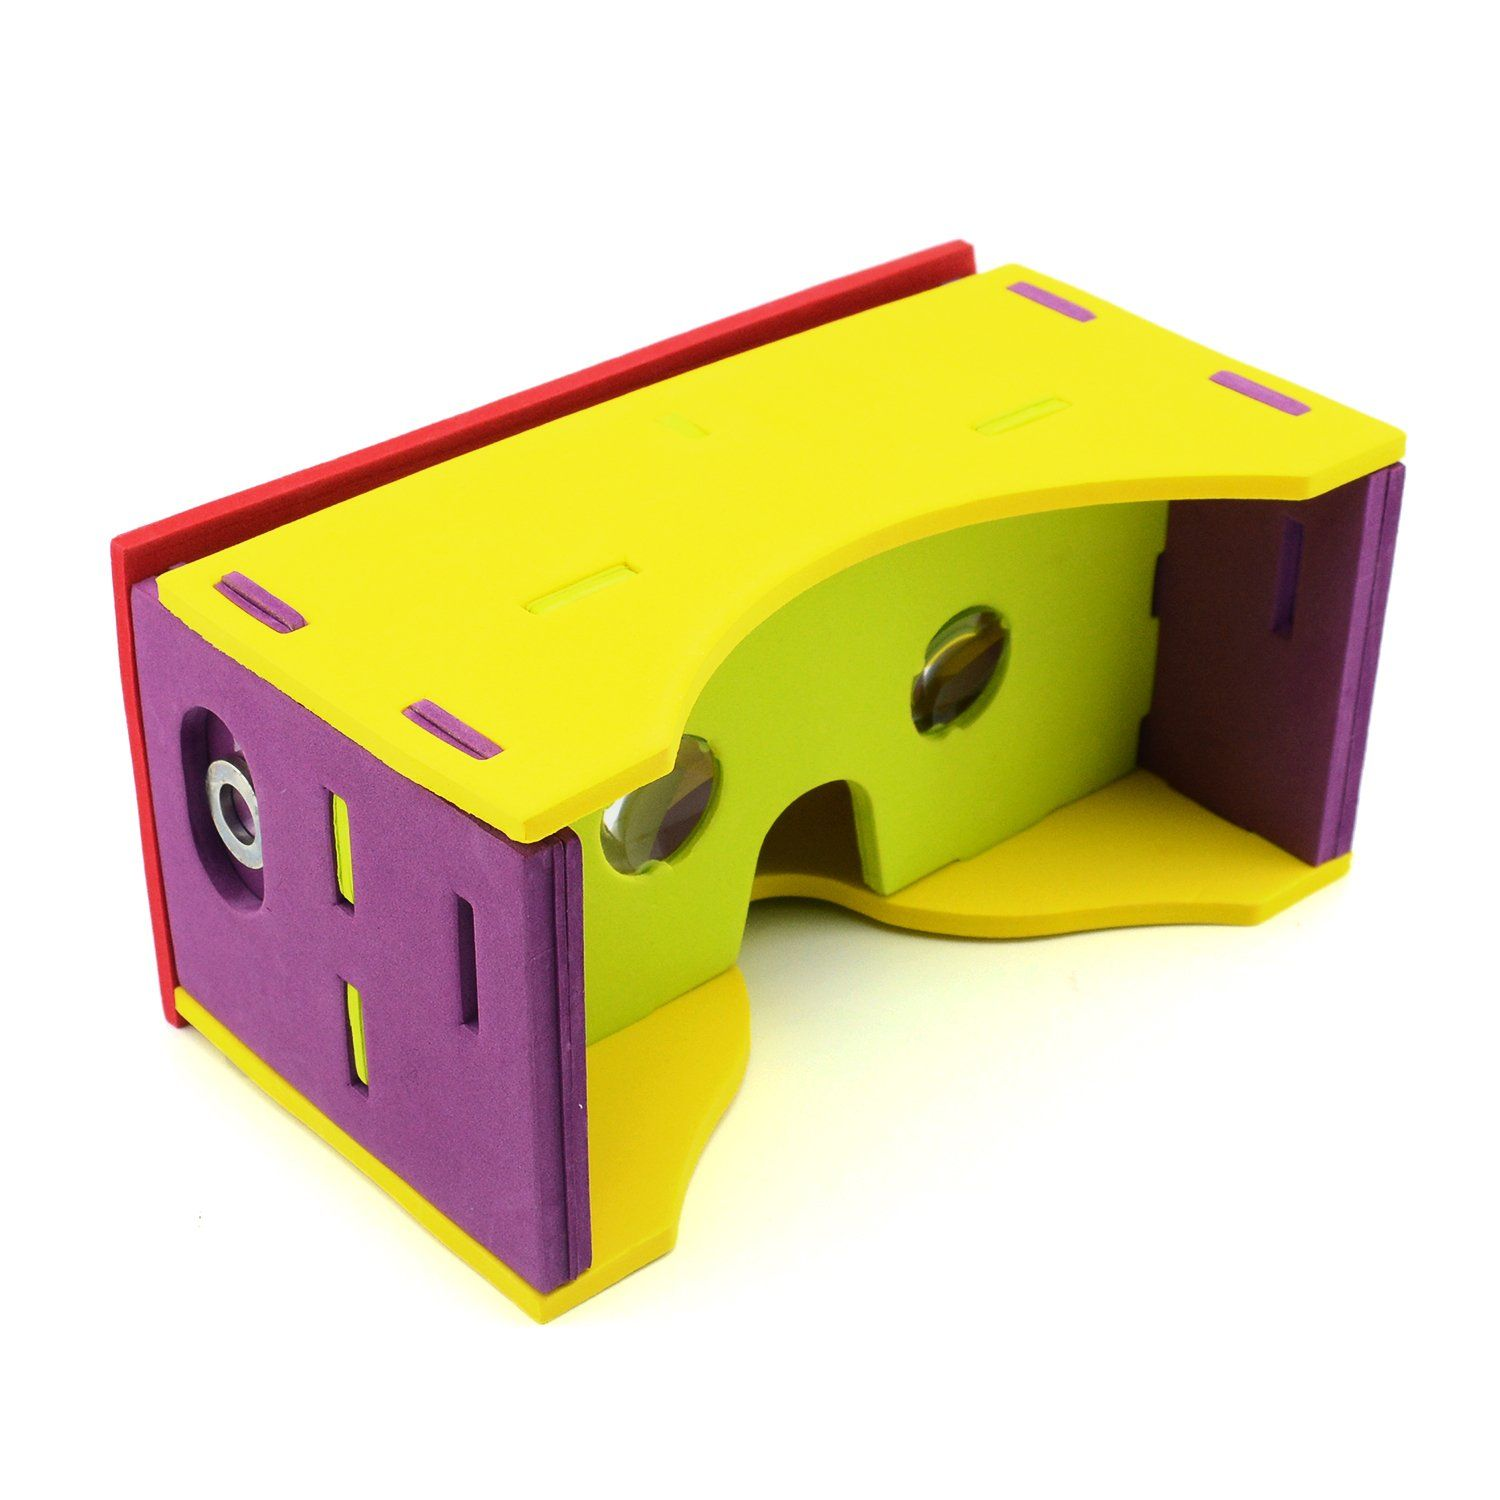 iSaddle Upgraded Google Cardboard Kit BIGGER EVA VERSION DIY 3D Glasses 3D Virtual Reality VR HD Visual Experience with 45mm Lenses & NFC Sticker & Magnet & HeadBand Compatible with Android & Apple. COMPLETE GOOGLE CARDBOARD KIT, Made of high quality environmentally friendly EVA foam material passed RoHS certificate. Biconvex lenses 25mm in diameter and Focal length 45mm (exact google cardboard specification). With NFC tag and headband.Bring you a more interseting experience. Supports LR...